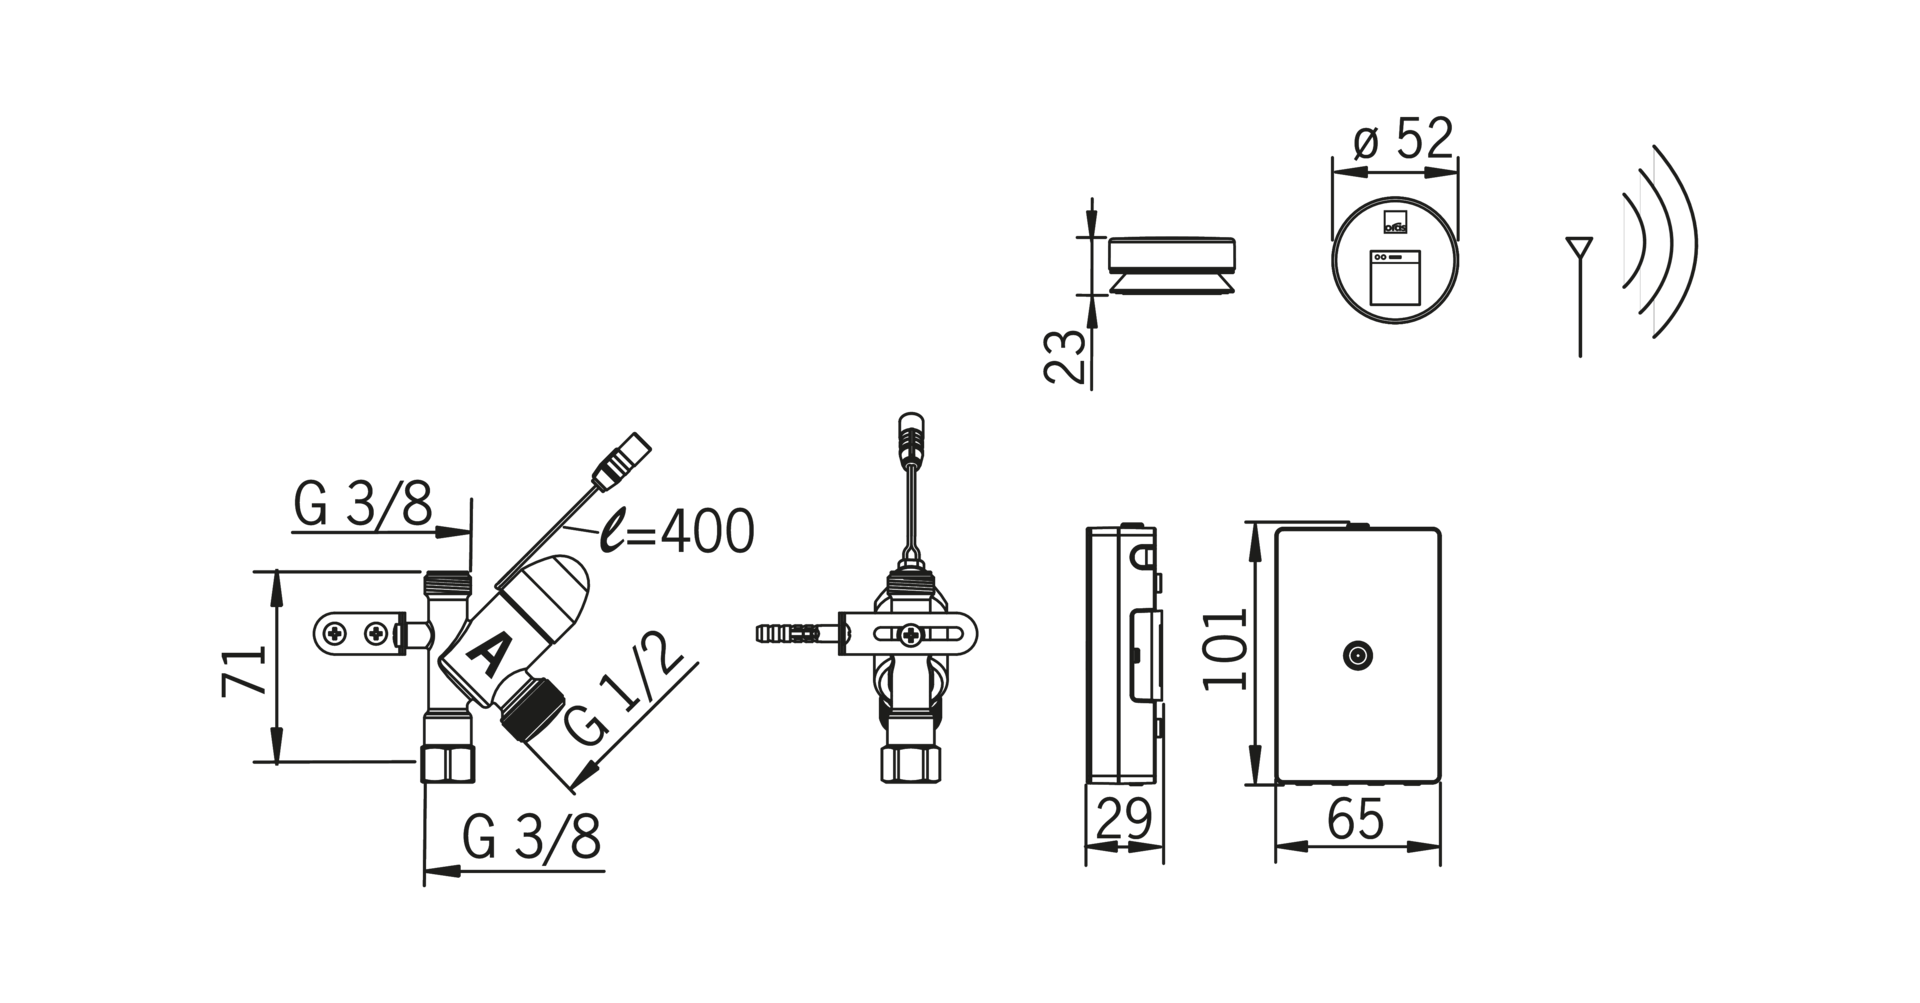 Imperial Wiring Schematic together with 497370052 together with Wiring Electric Cooker Diagram together with 421282982 also Honeywell Regulator Wiring. on washing machine transformer